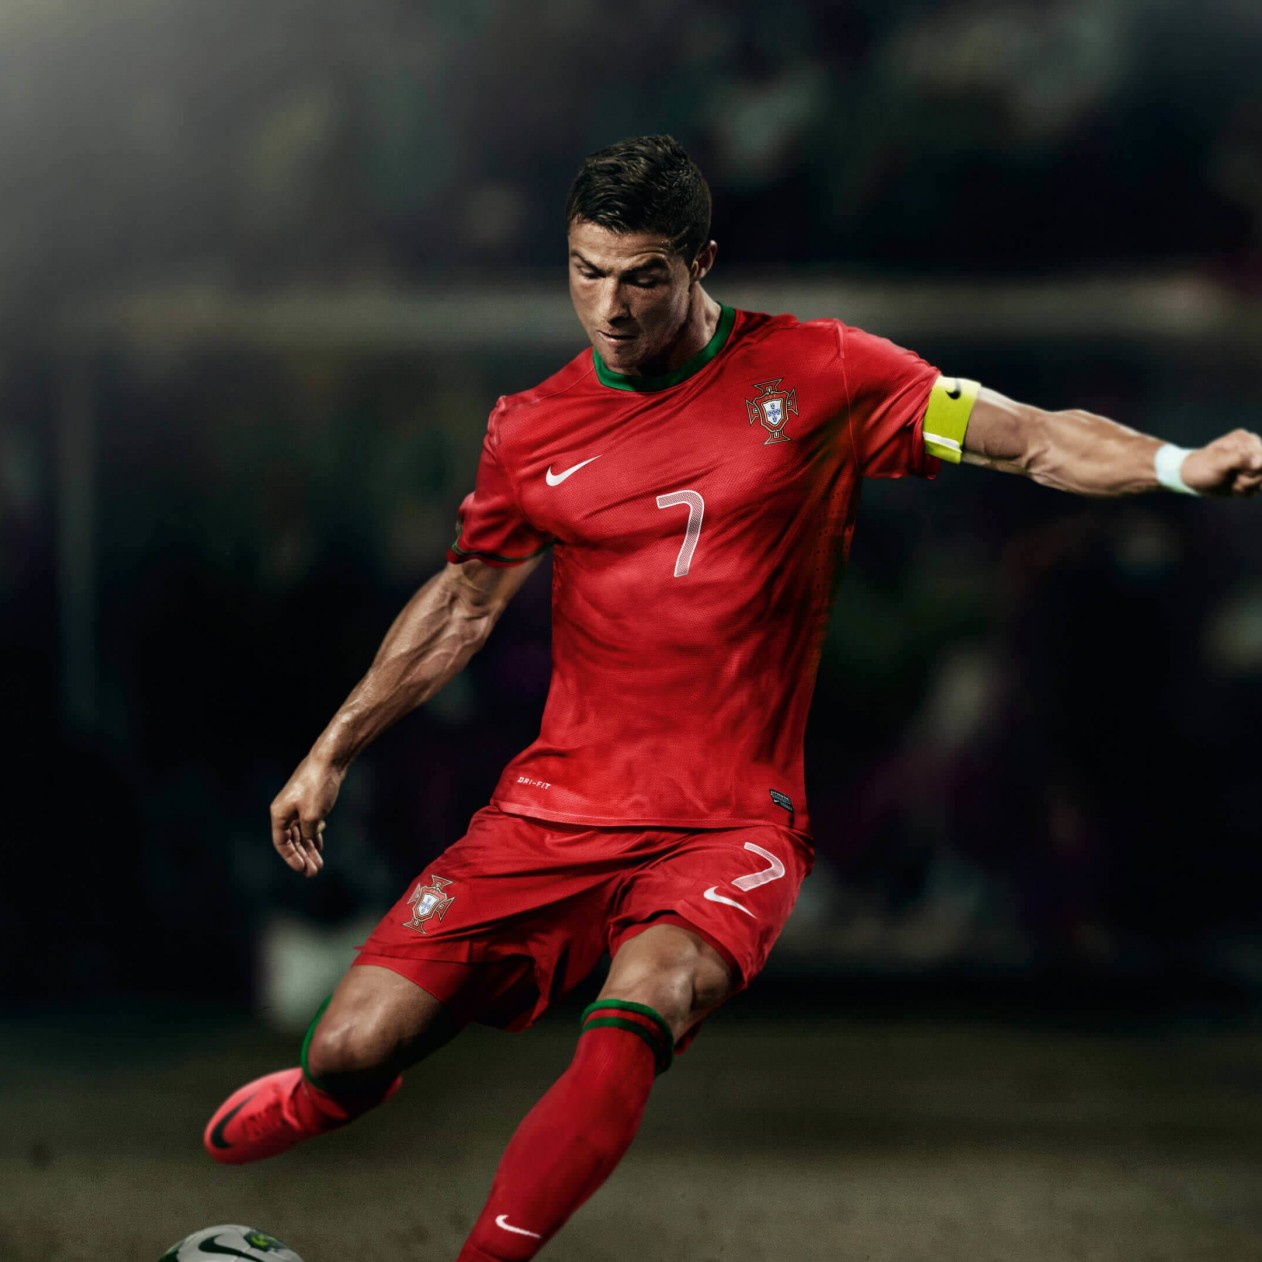 Cristiano Ronaldo In Portugal Jersey Wallpaper for Apple iPad mini